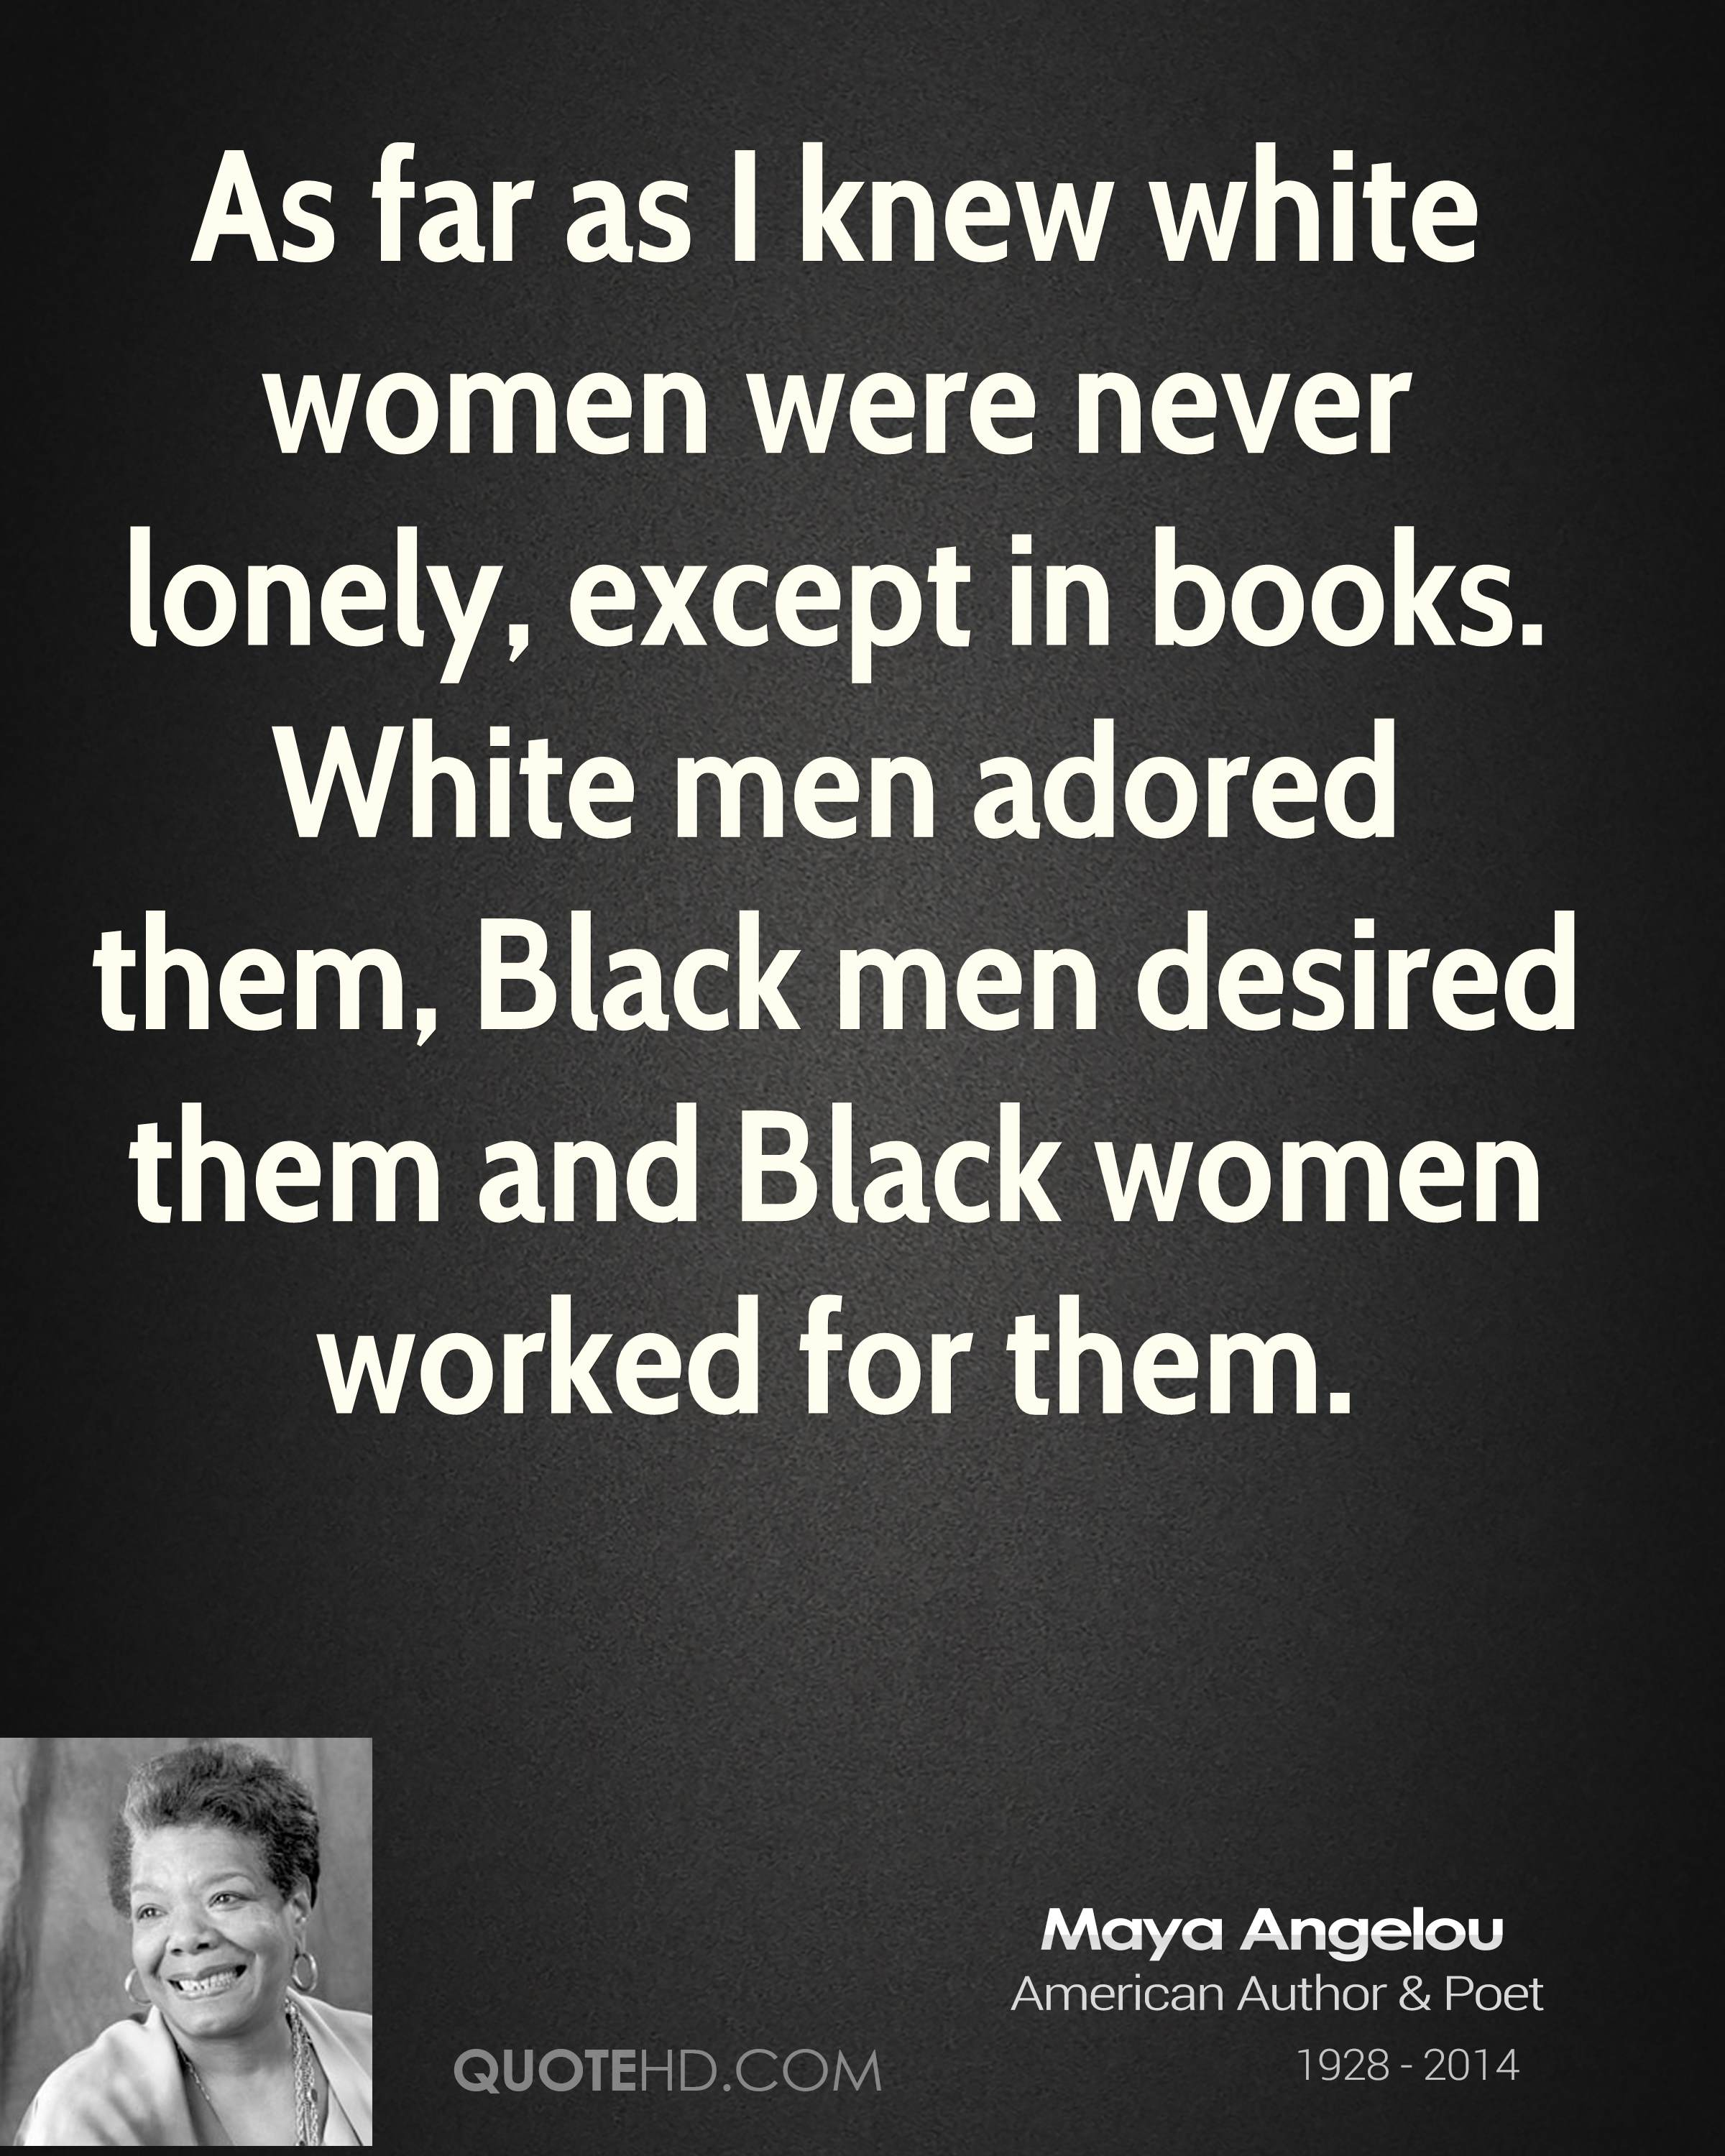 Quotes By Black Women Maya Angelou Women Quotes  Quotehd